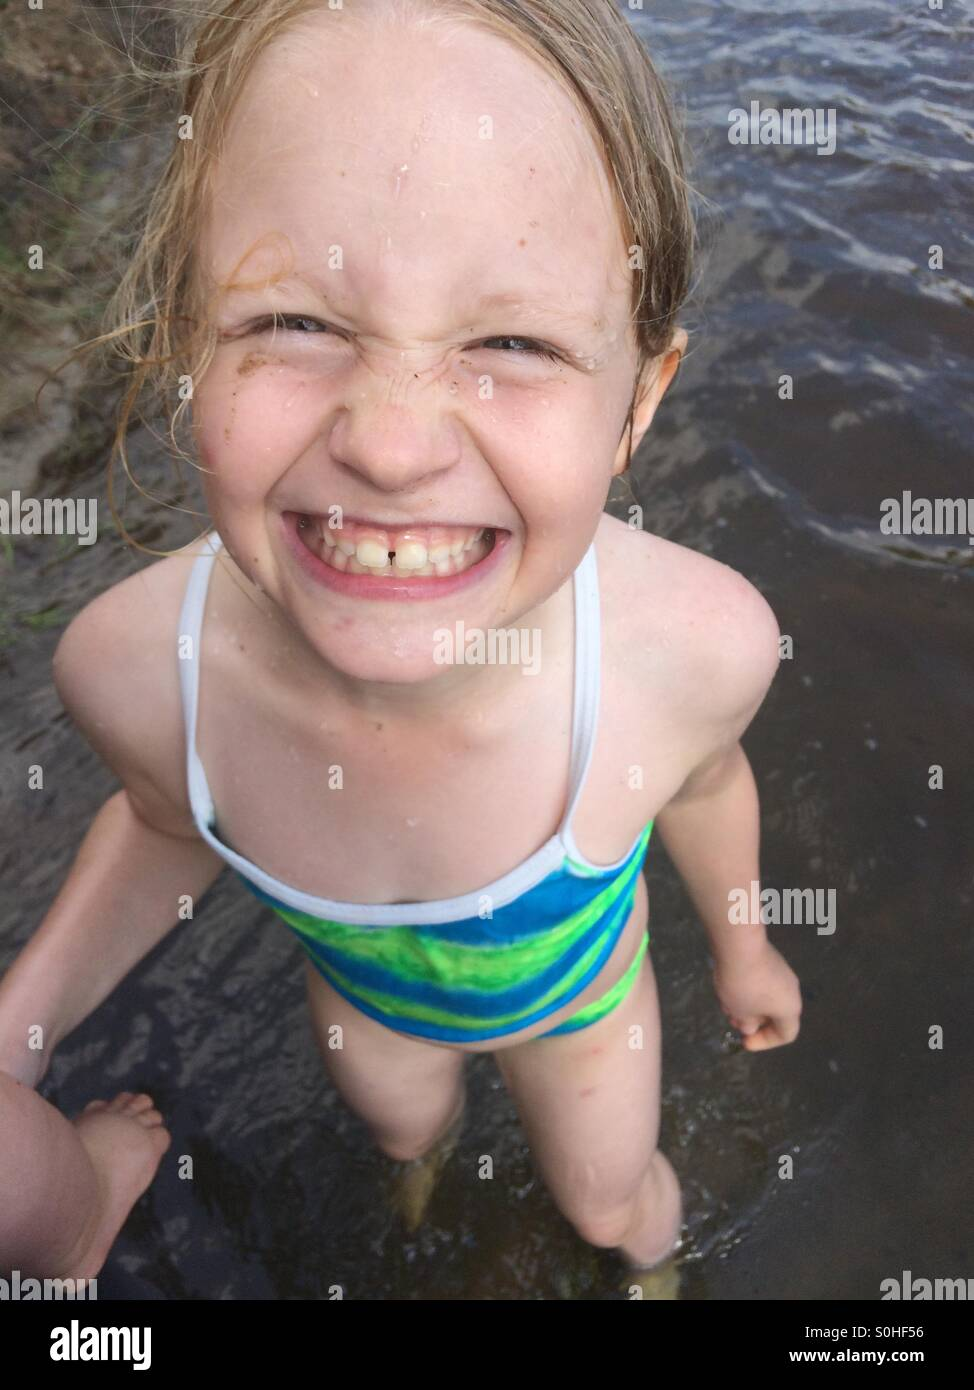 Young girl smiling and having fun grabbing her brother's leg in the river - Stock Image